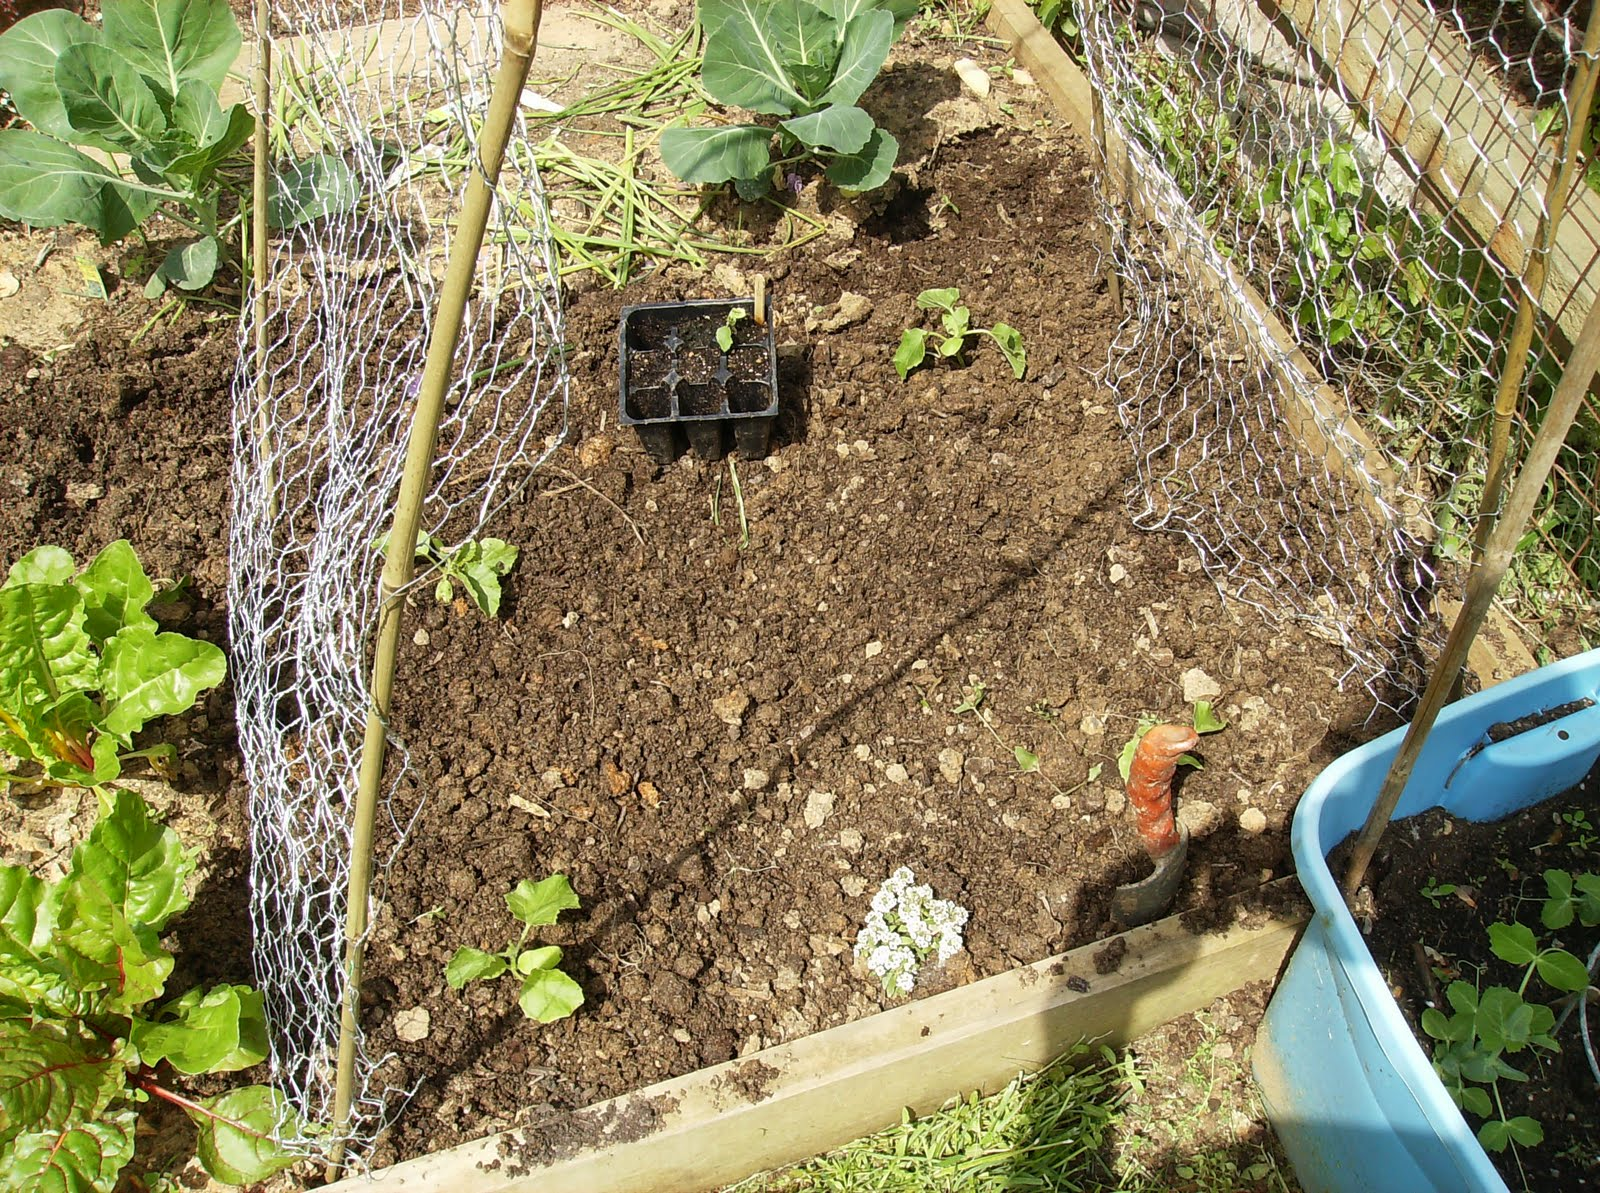 Building a low cost vegetable garden trellis in pictures for How to build a vegetable garden